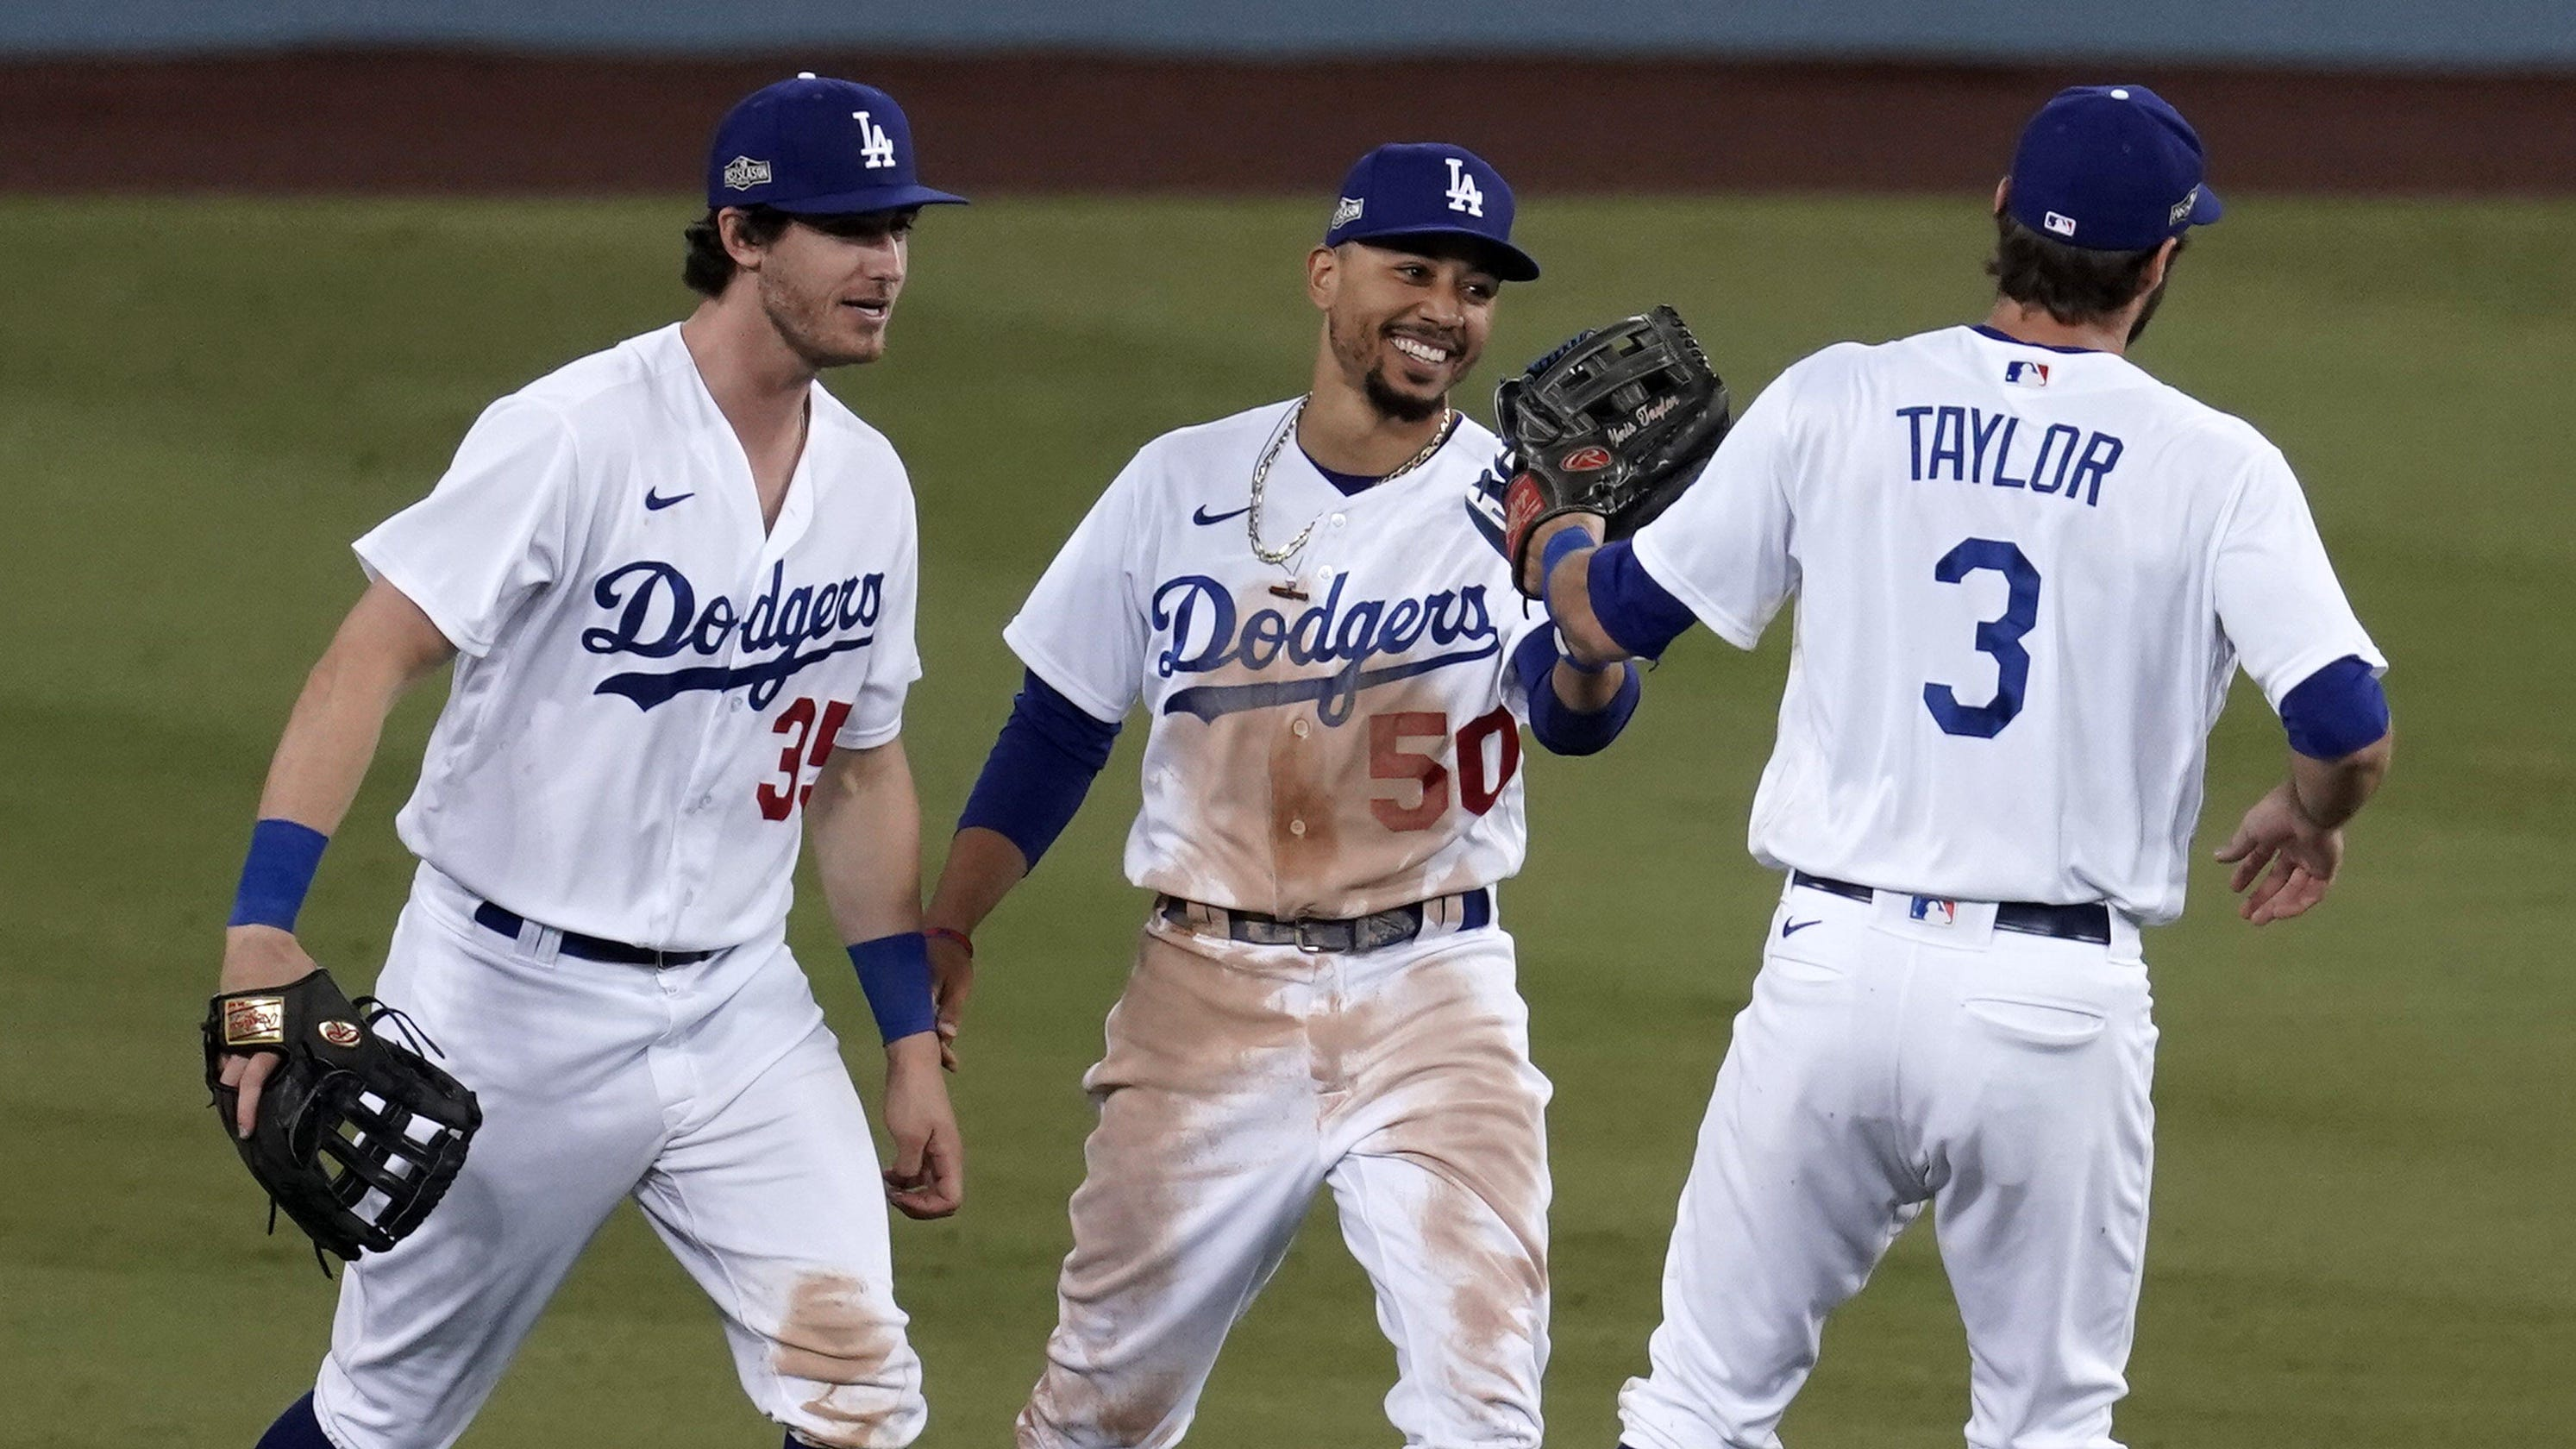 Ranking the World Series contenders 1 to 8